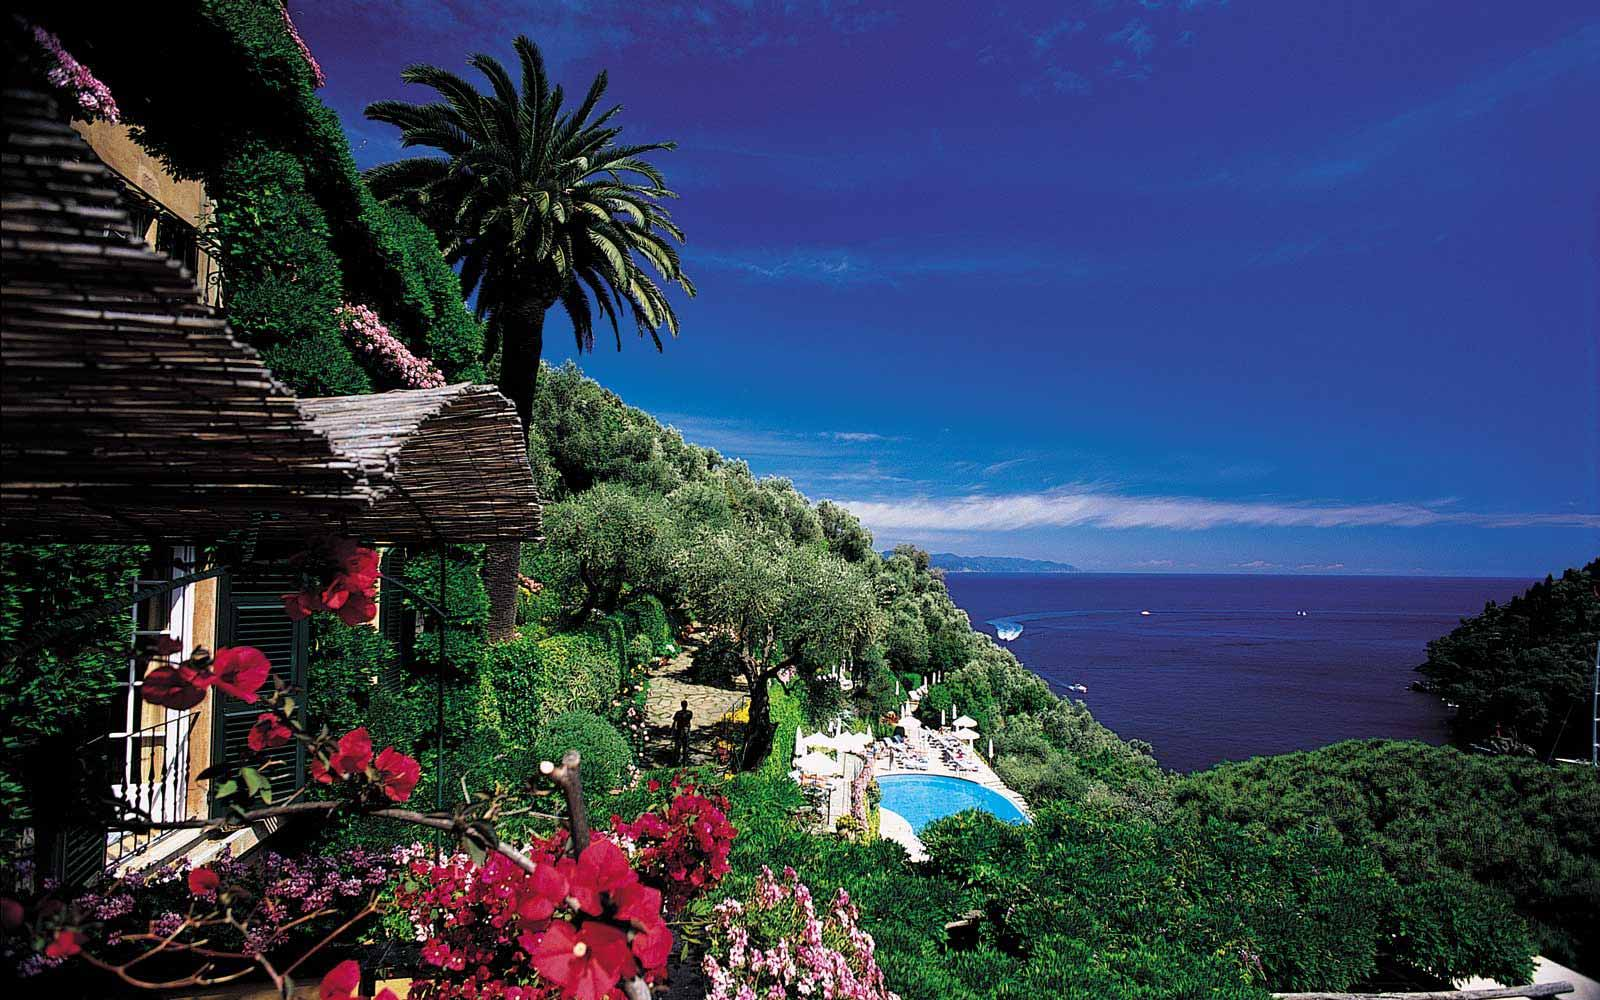 Views from Belmond Hotel Splendido & Splendido Mare